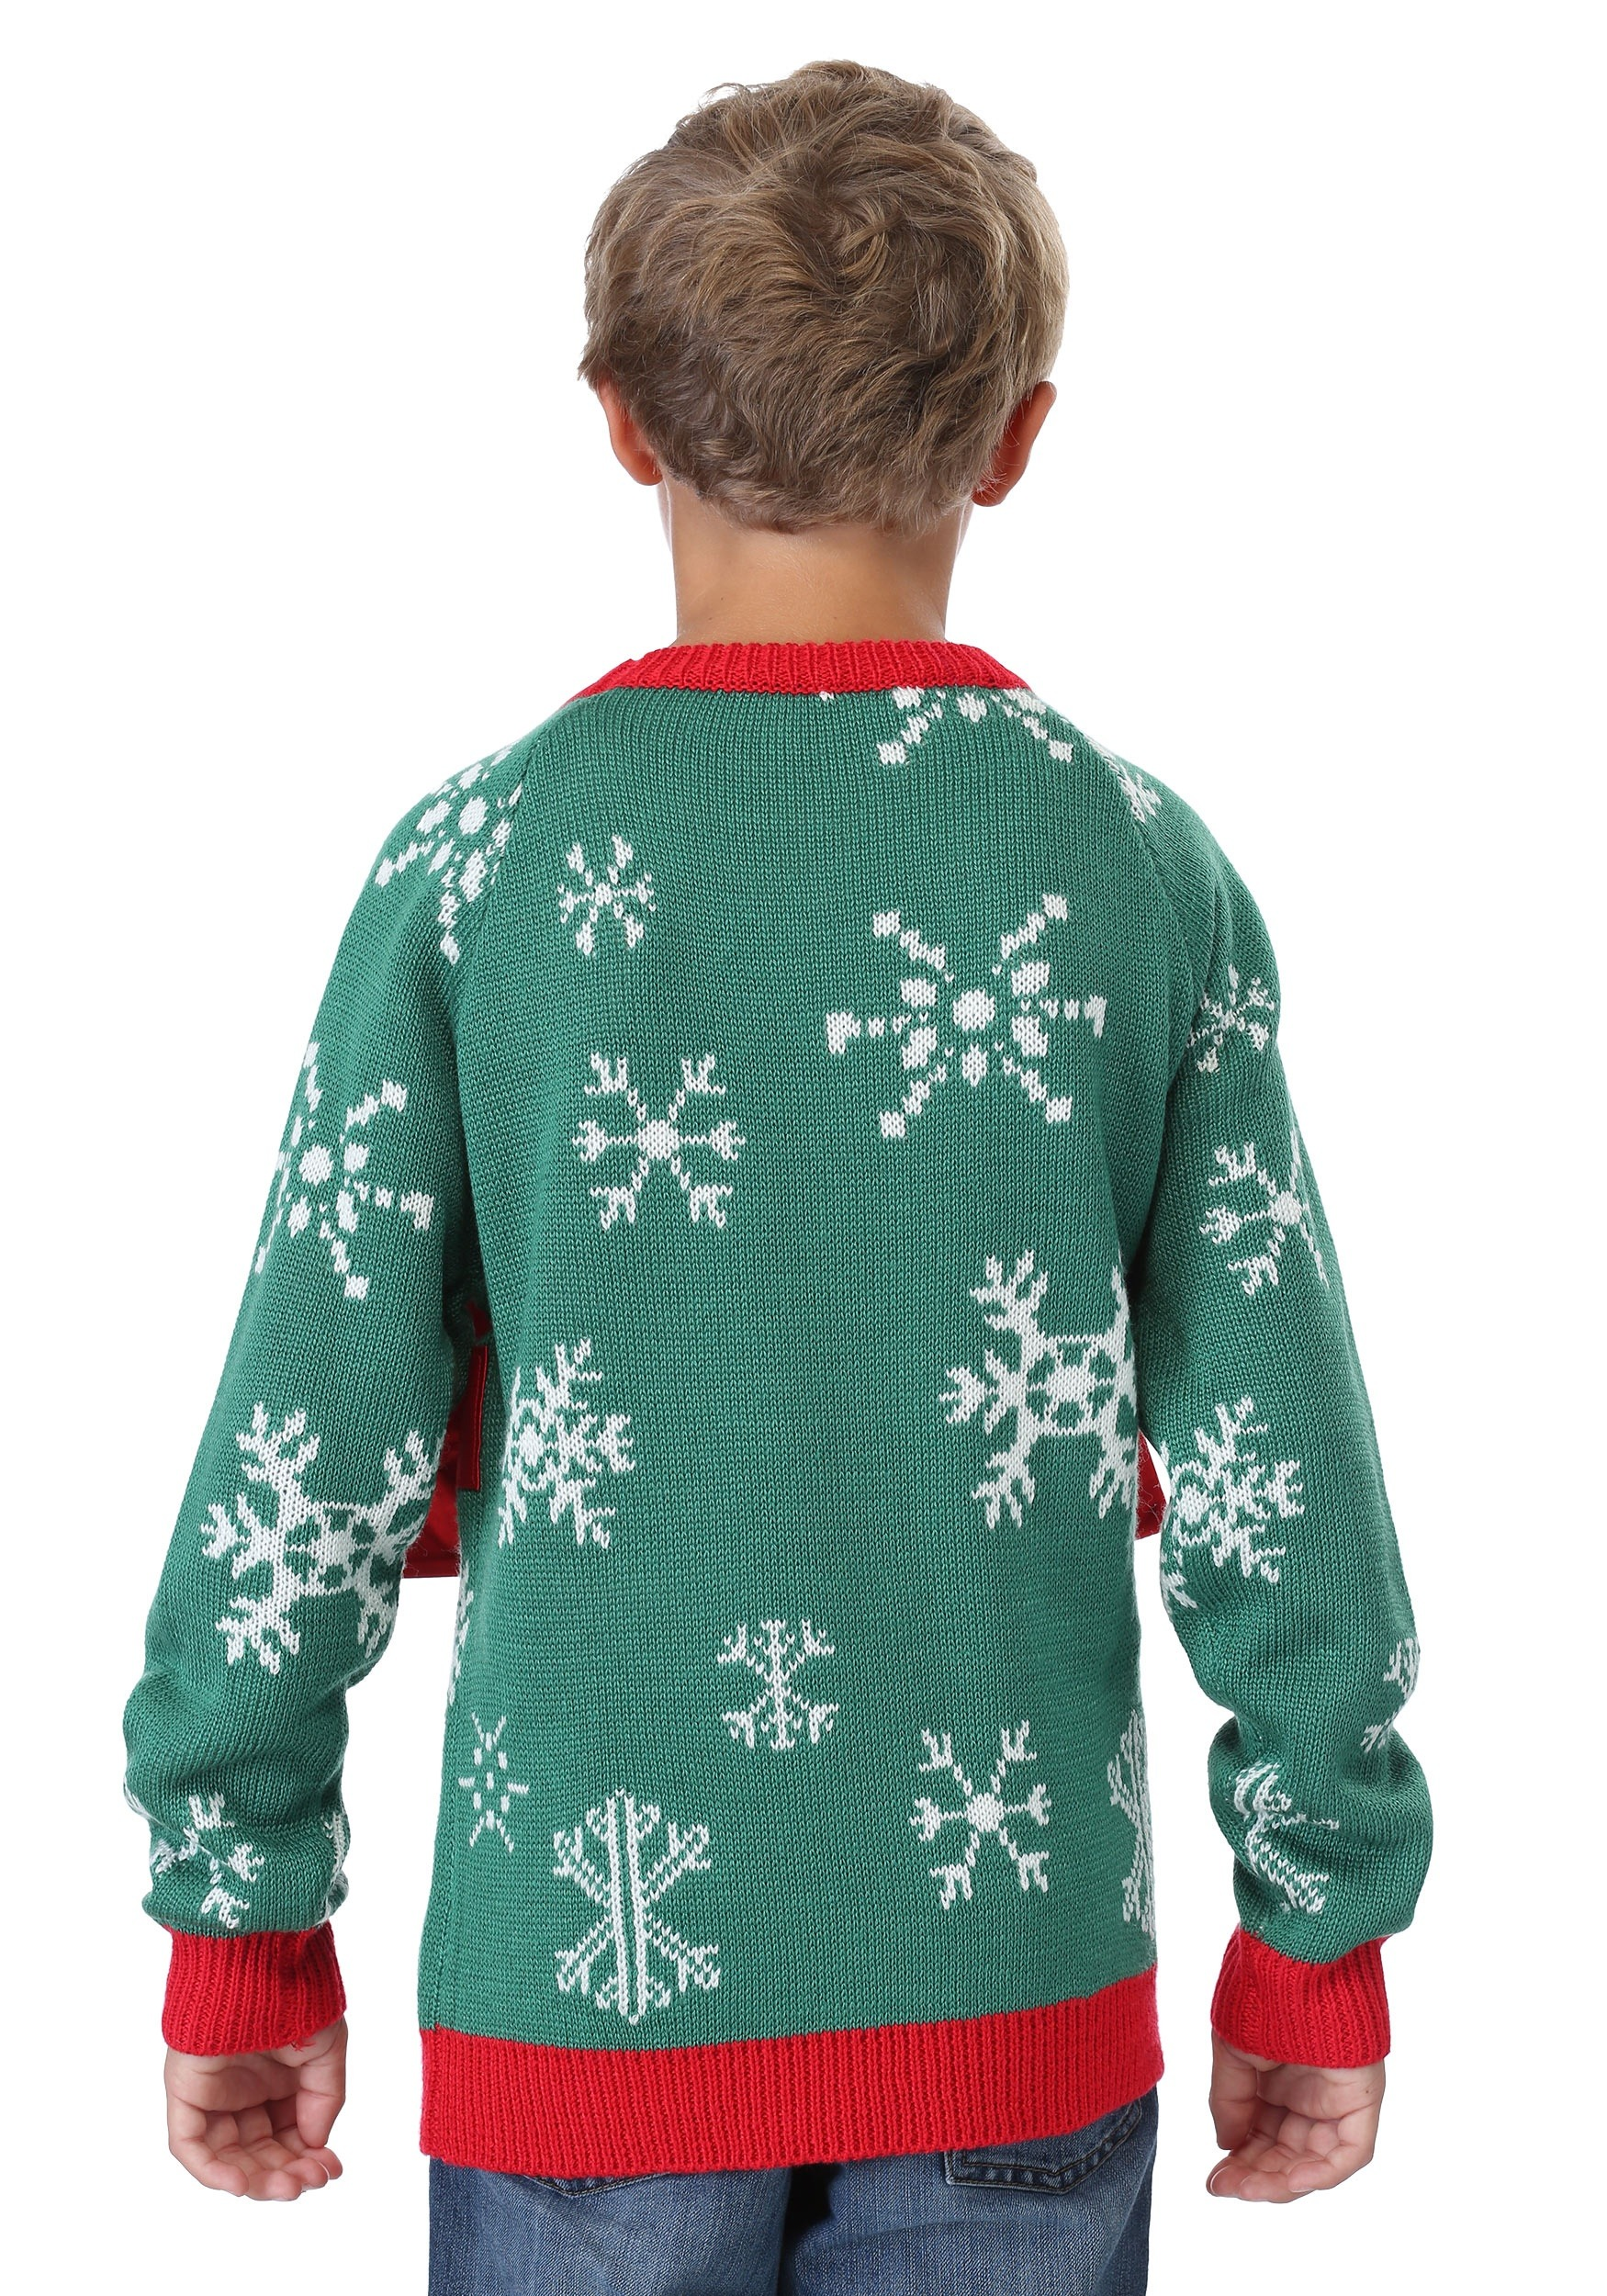 kids present holiday sweater - Ugly Christmas Sweater Dinosaur